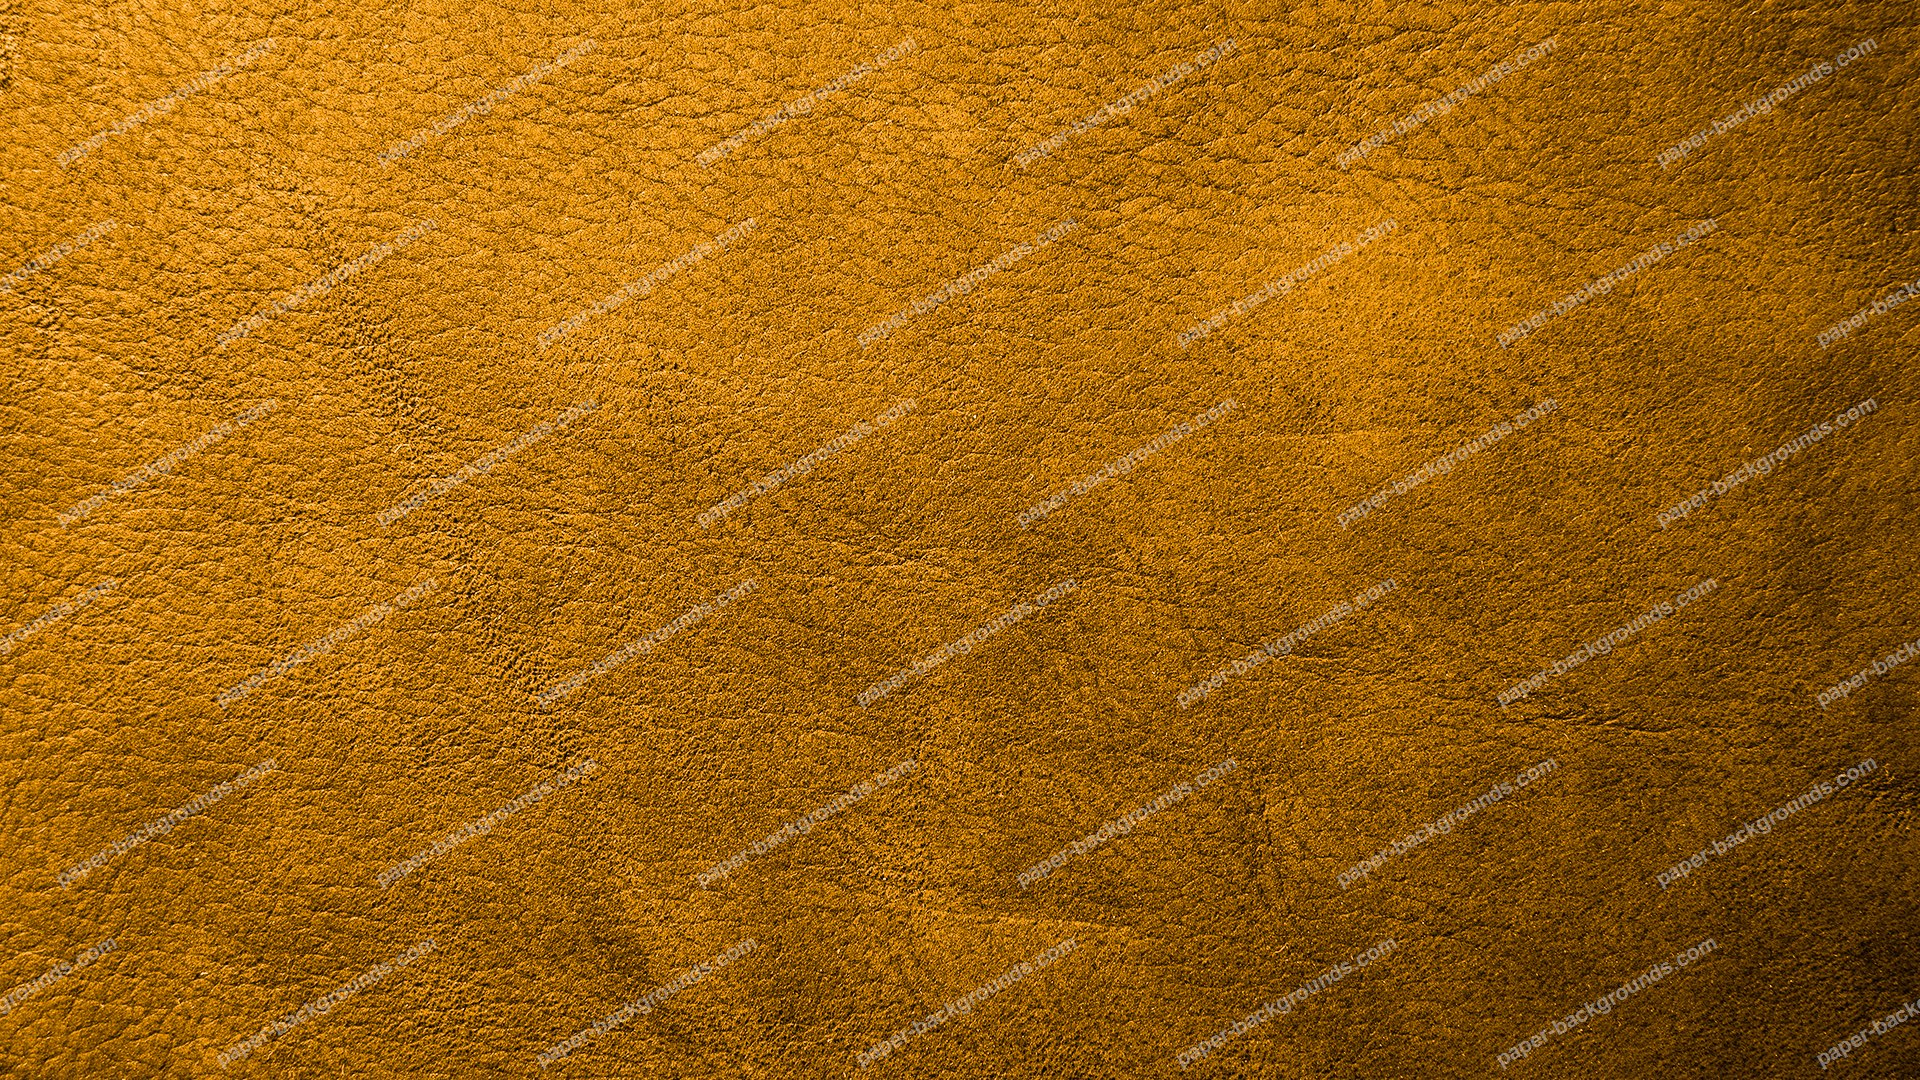 Brown Leather Texture Background HD 1920 x 1080p